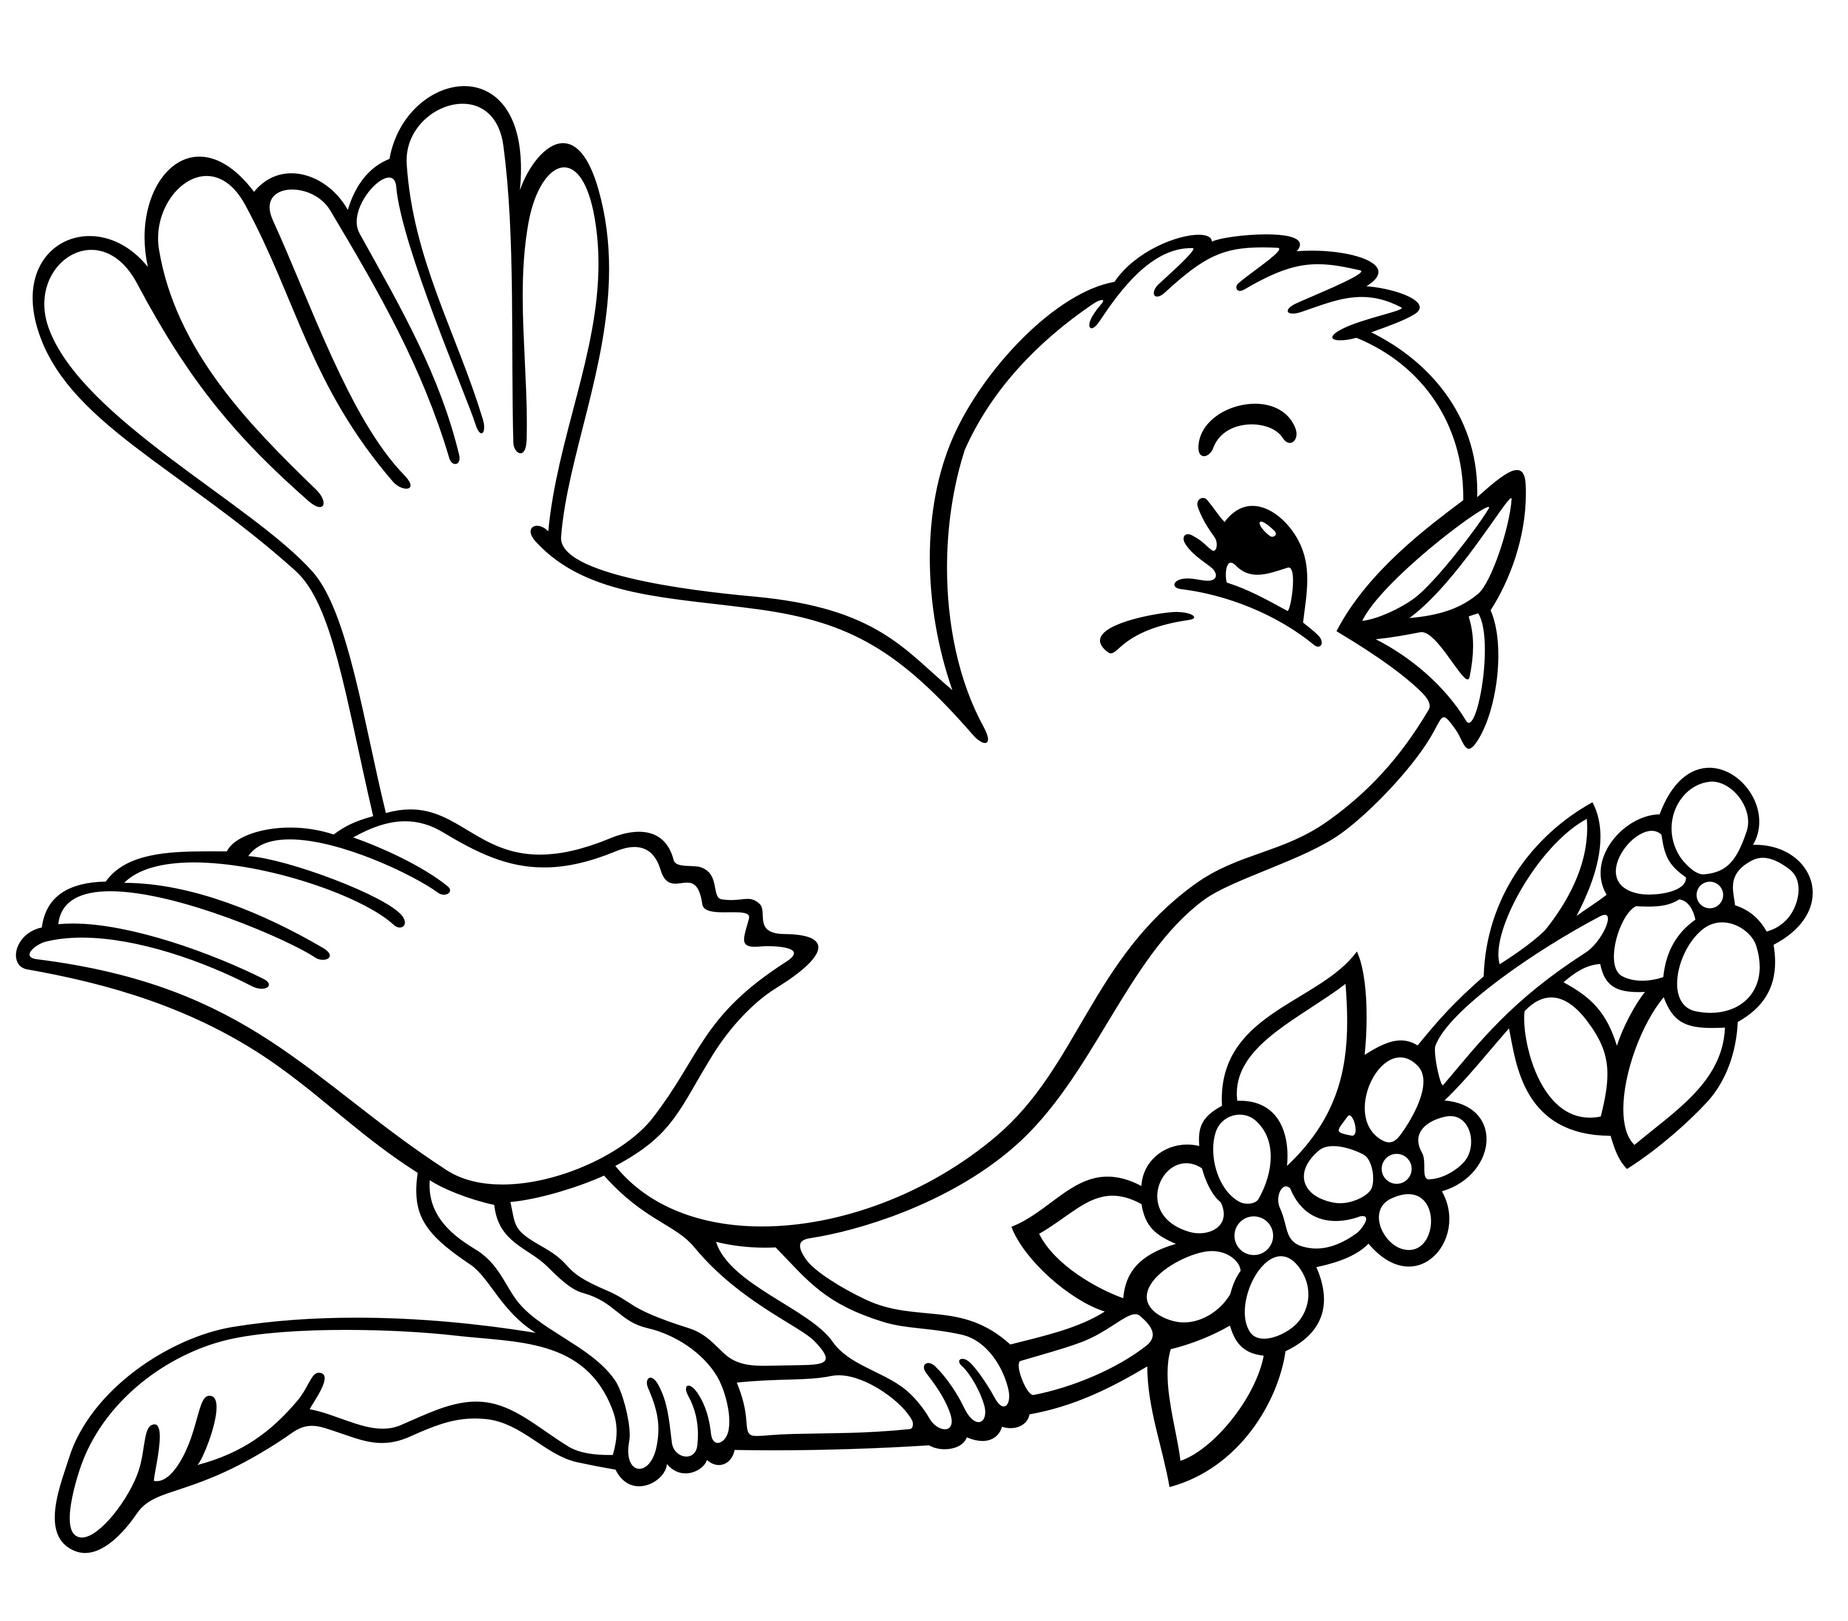 free birds coloring pages - bird coloring page 2861 coloring pages pinterest